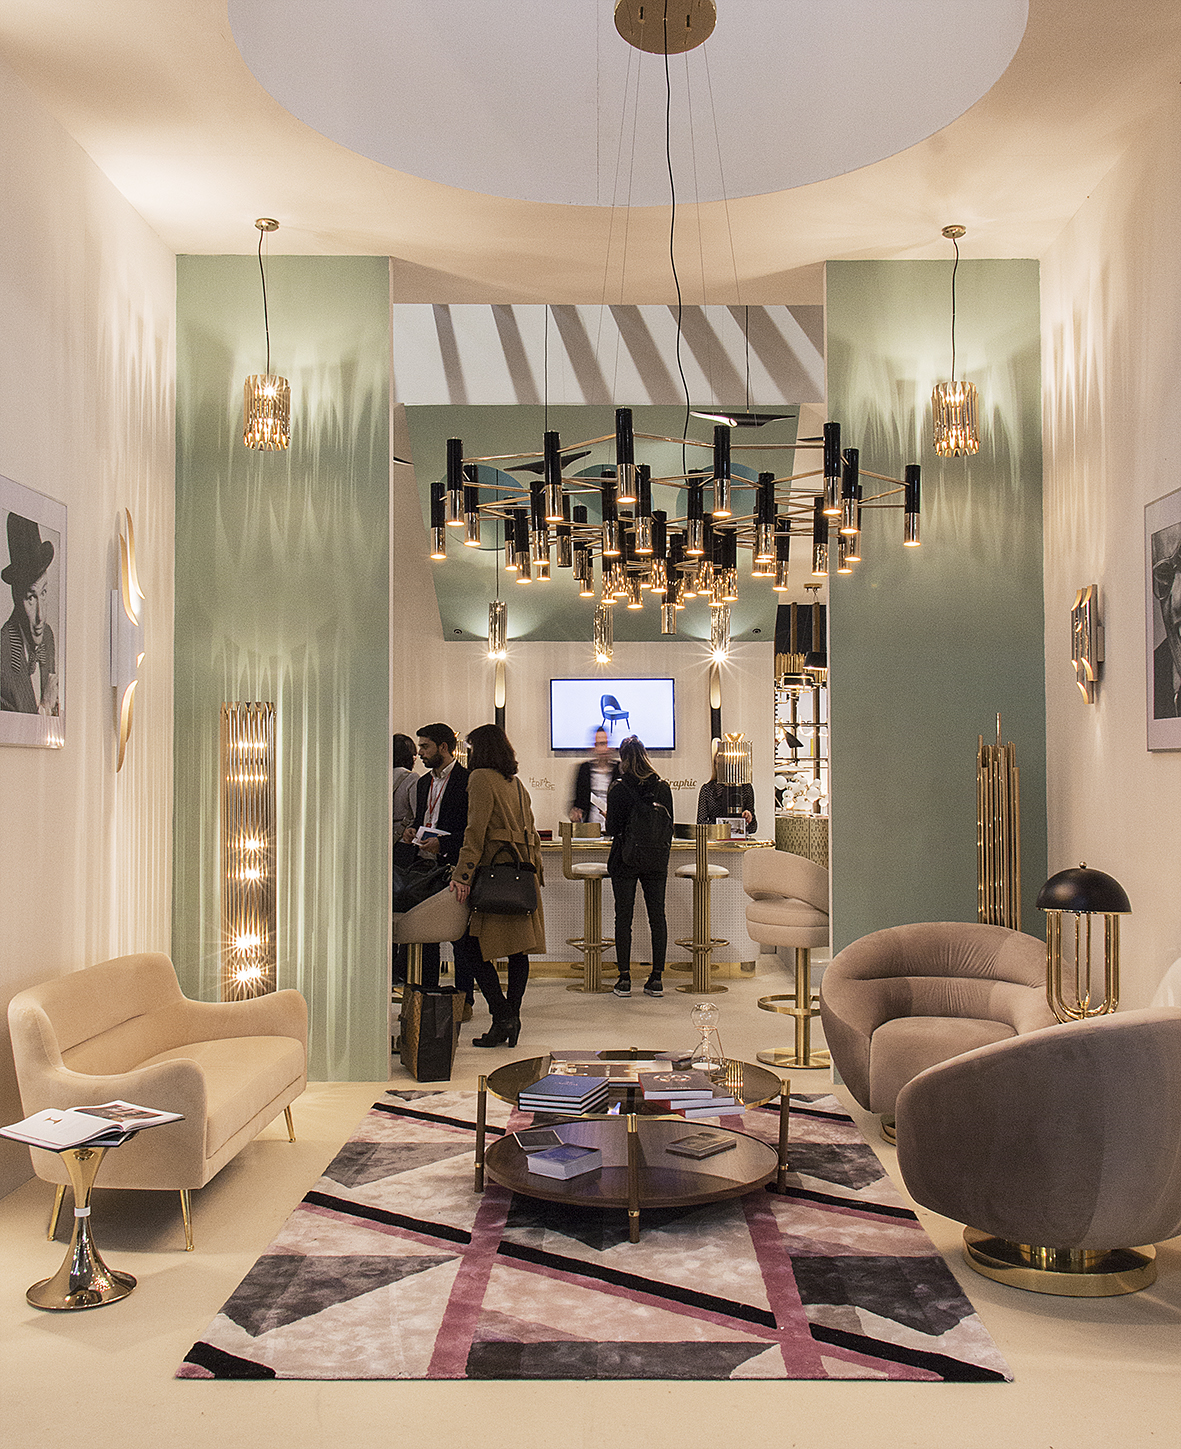 The Ultimate Guide To Maison et Objet September 2018 maison et objet september The Ultimate Guide To Maison et Objet September 2018 The Ultimate Guide To Maison et Objet September 2018 1